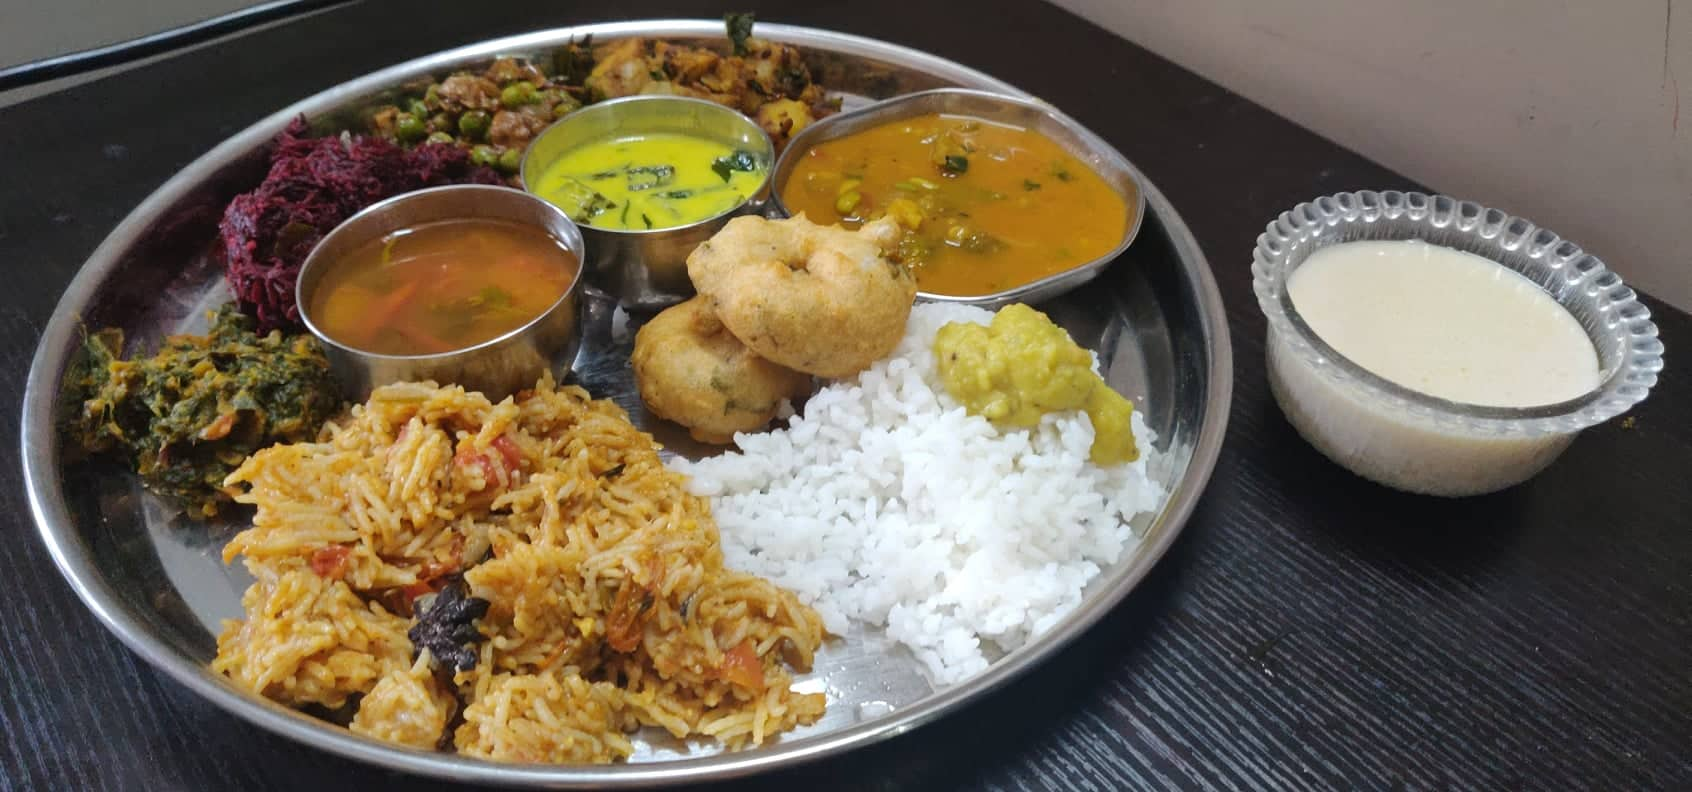 south_indian_special_meals - 82274048_2528831844056098_2666728645577408512_n